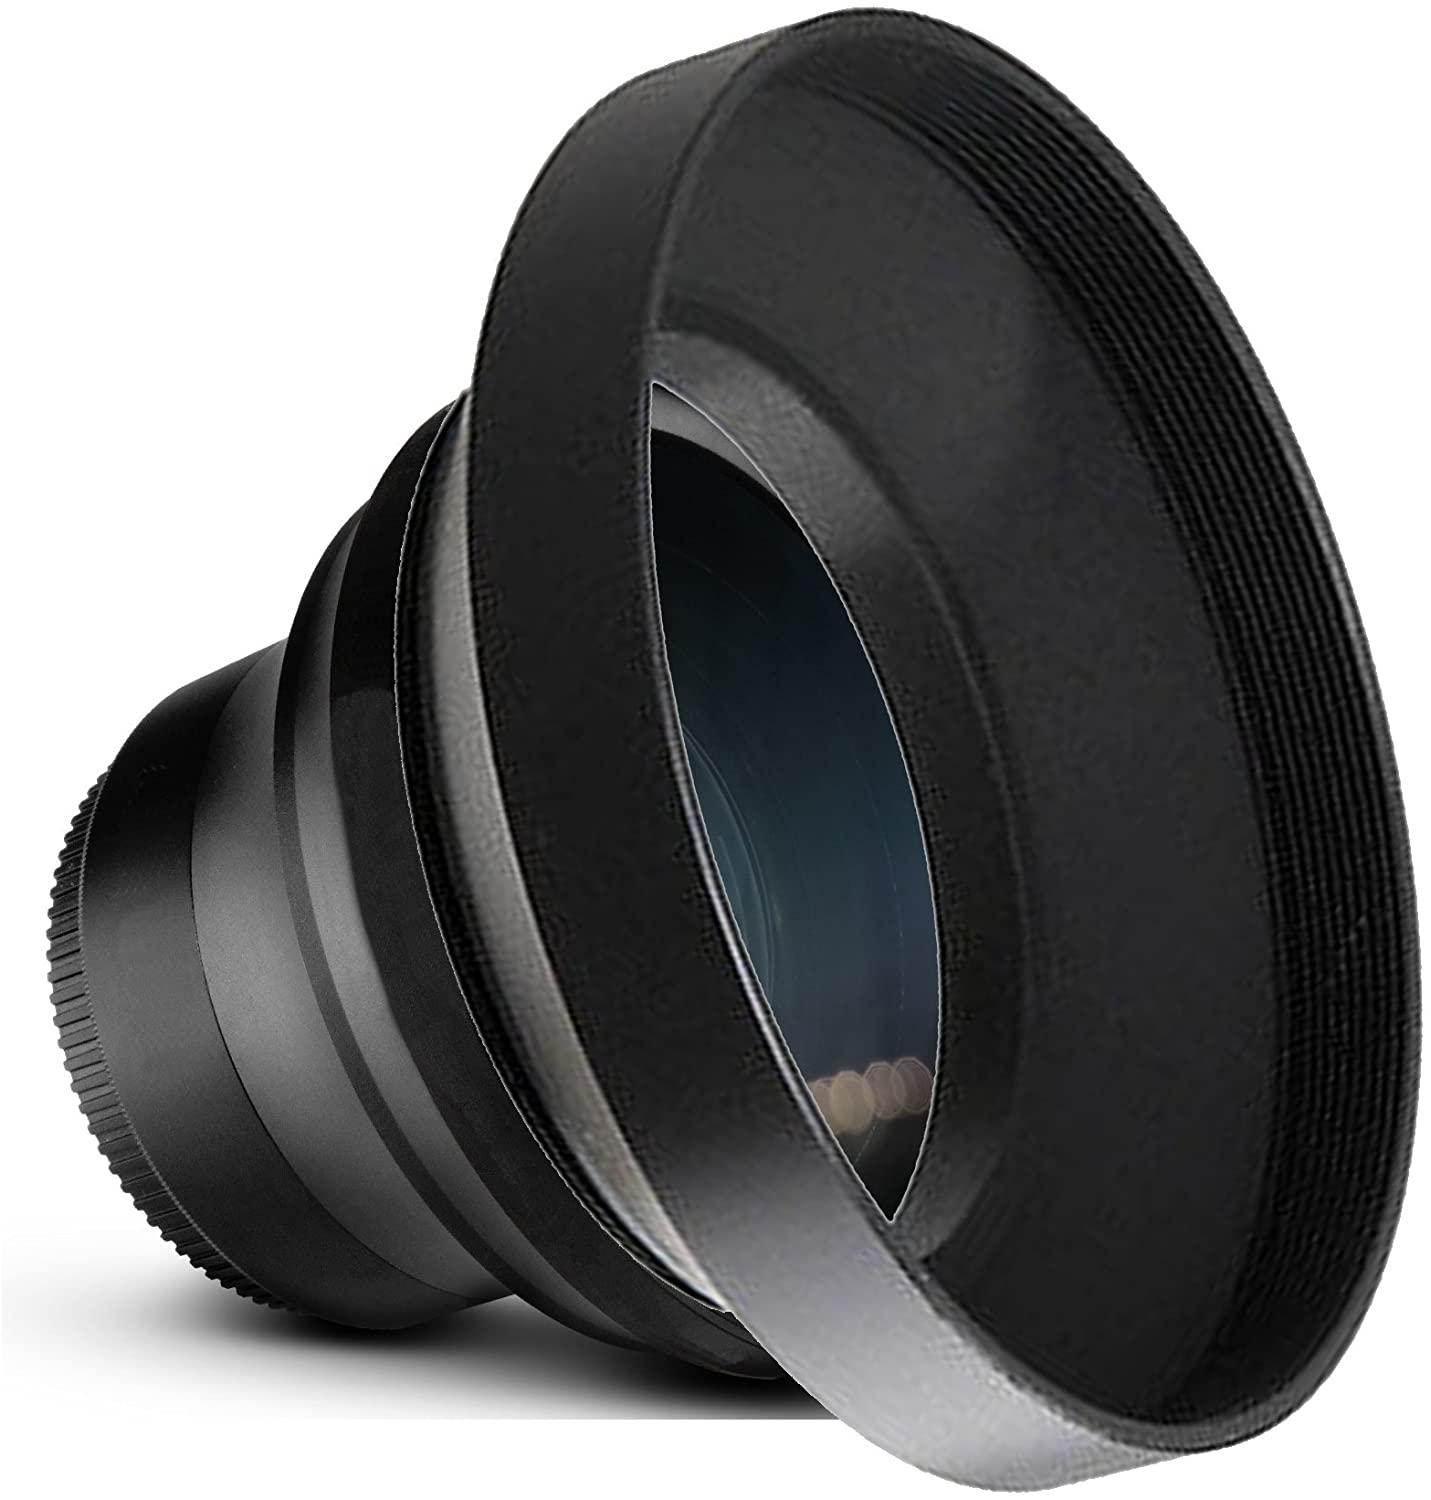 0.43x High Grade Wide Angle Conversion Lens for Nikon DL24-500